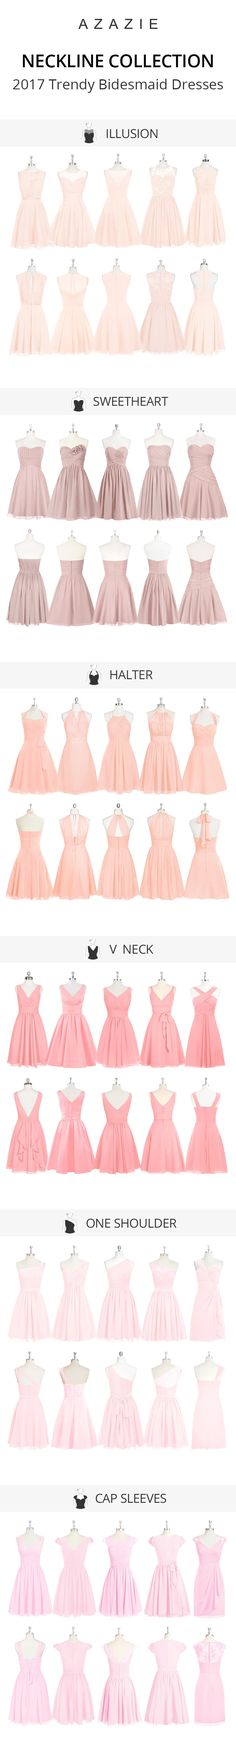 Show off your neckline with these dresses! Wedding tip: Try out our sample program before you purchase to make sure you are completely in love with a dress! Azazie has over 100 styles from delicate lace to bold satins. Shop our affordable bridesmaid dresses today!